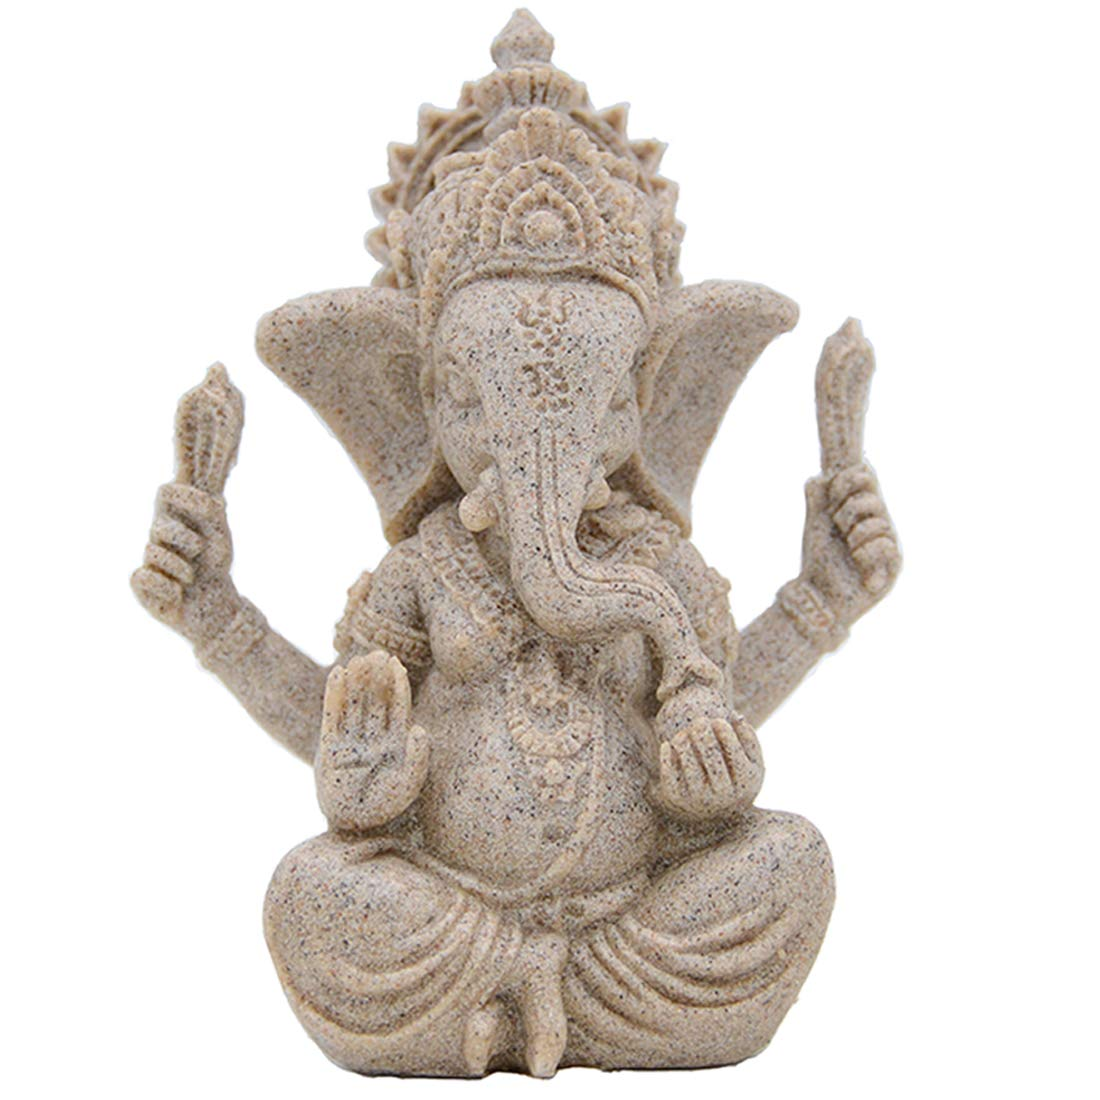 PYK life Buddha Statue, Sandstone Ganesha Statues by Handmade. Ganesh Idol for Car,Hindu Statues,Ganesha Idol,Budda Statues for Home Decor.